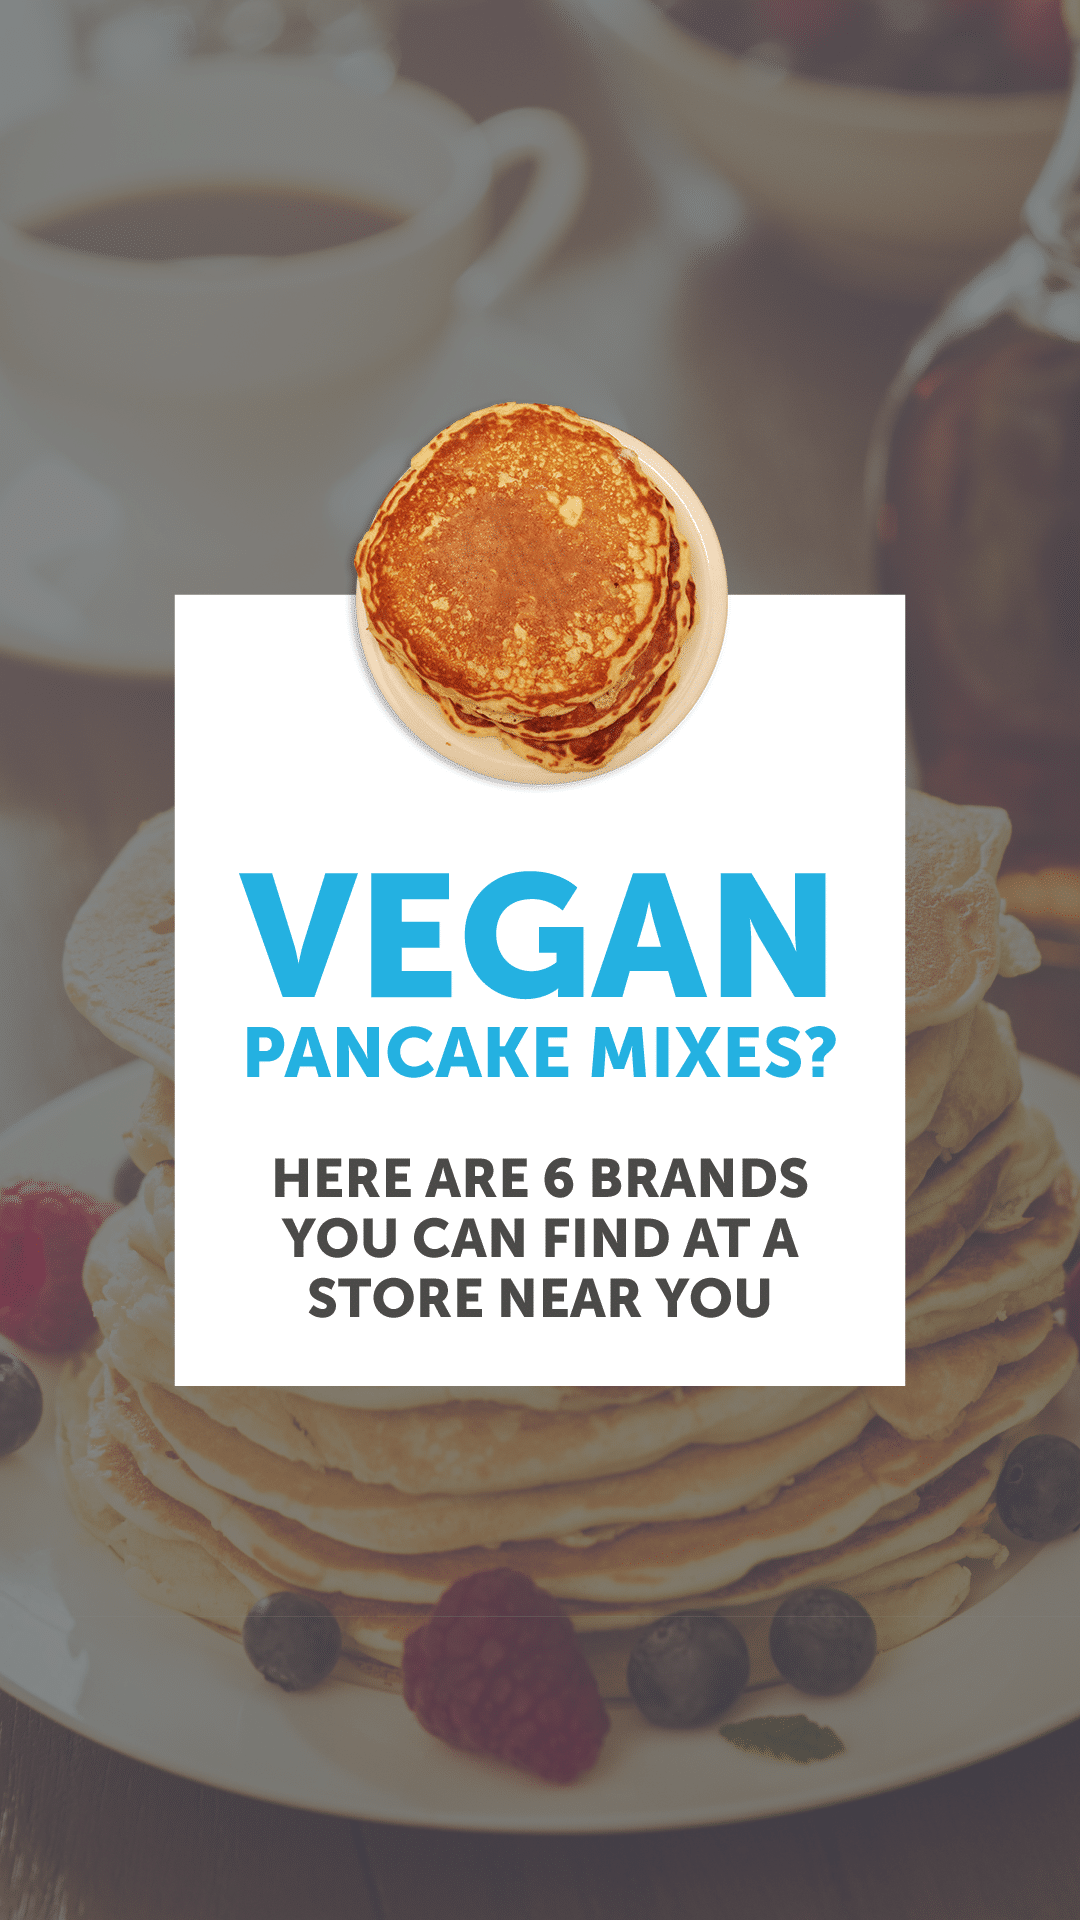 Vegan Pancake Mixes? Here Are 6 Brands You Can Find at a Store Near You